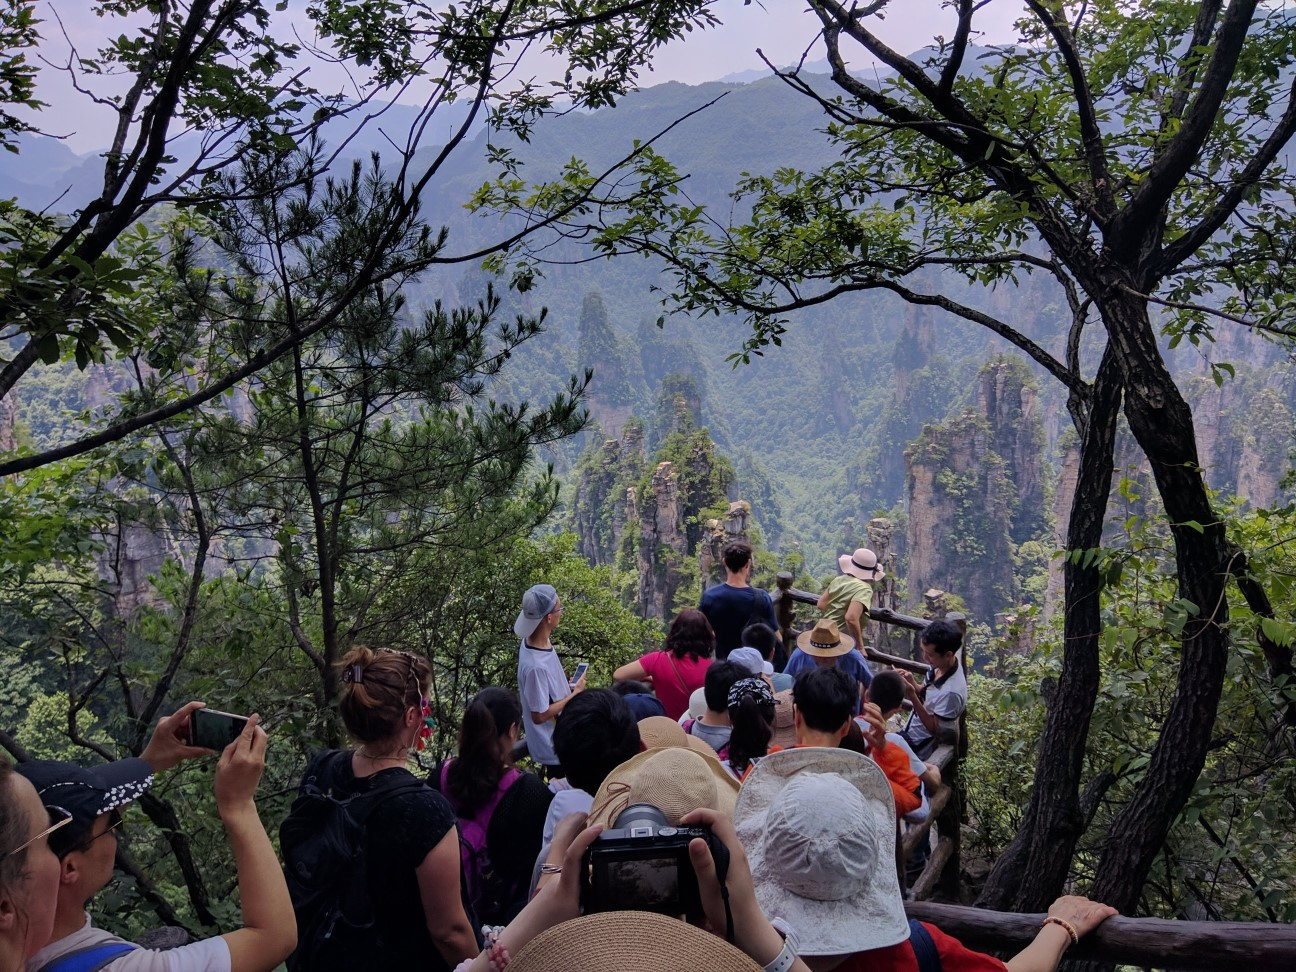 Plethora of crowds at Zhangjiajie